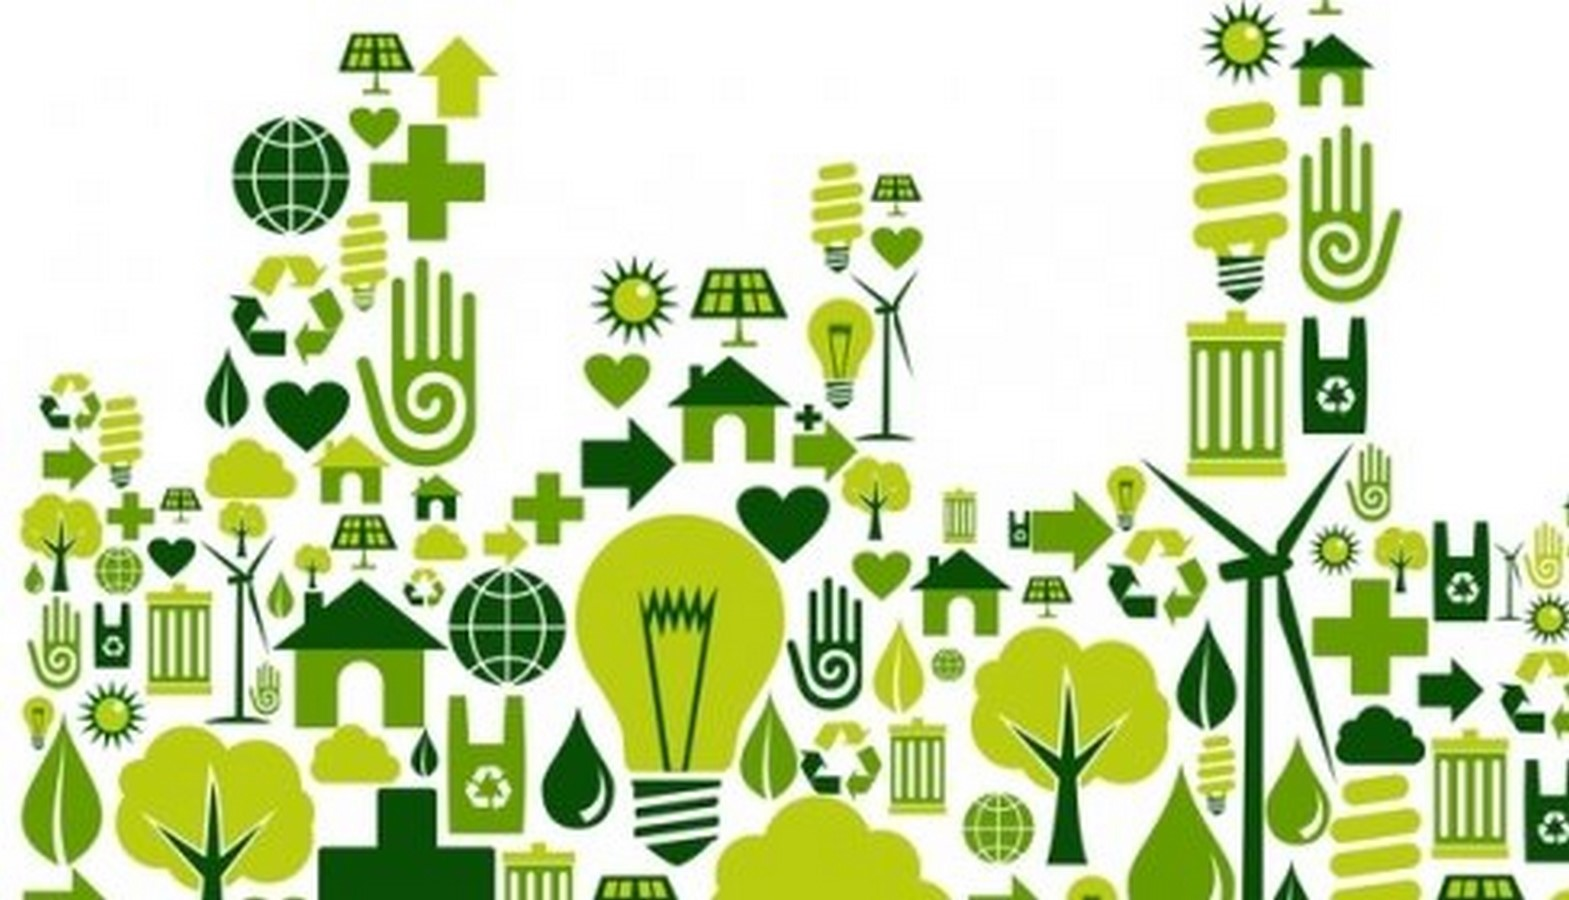 Architecture of India: Is it really Sustainable? - Sheet3